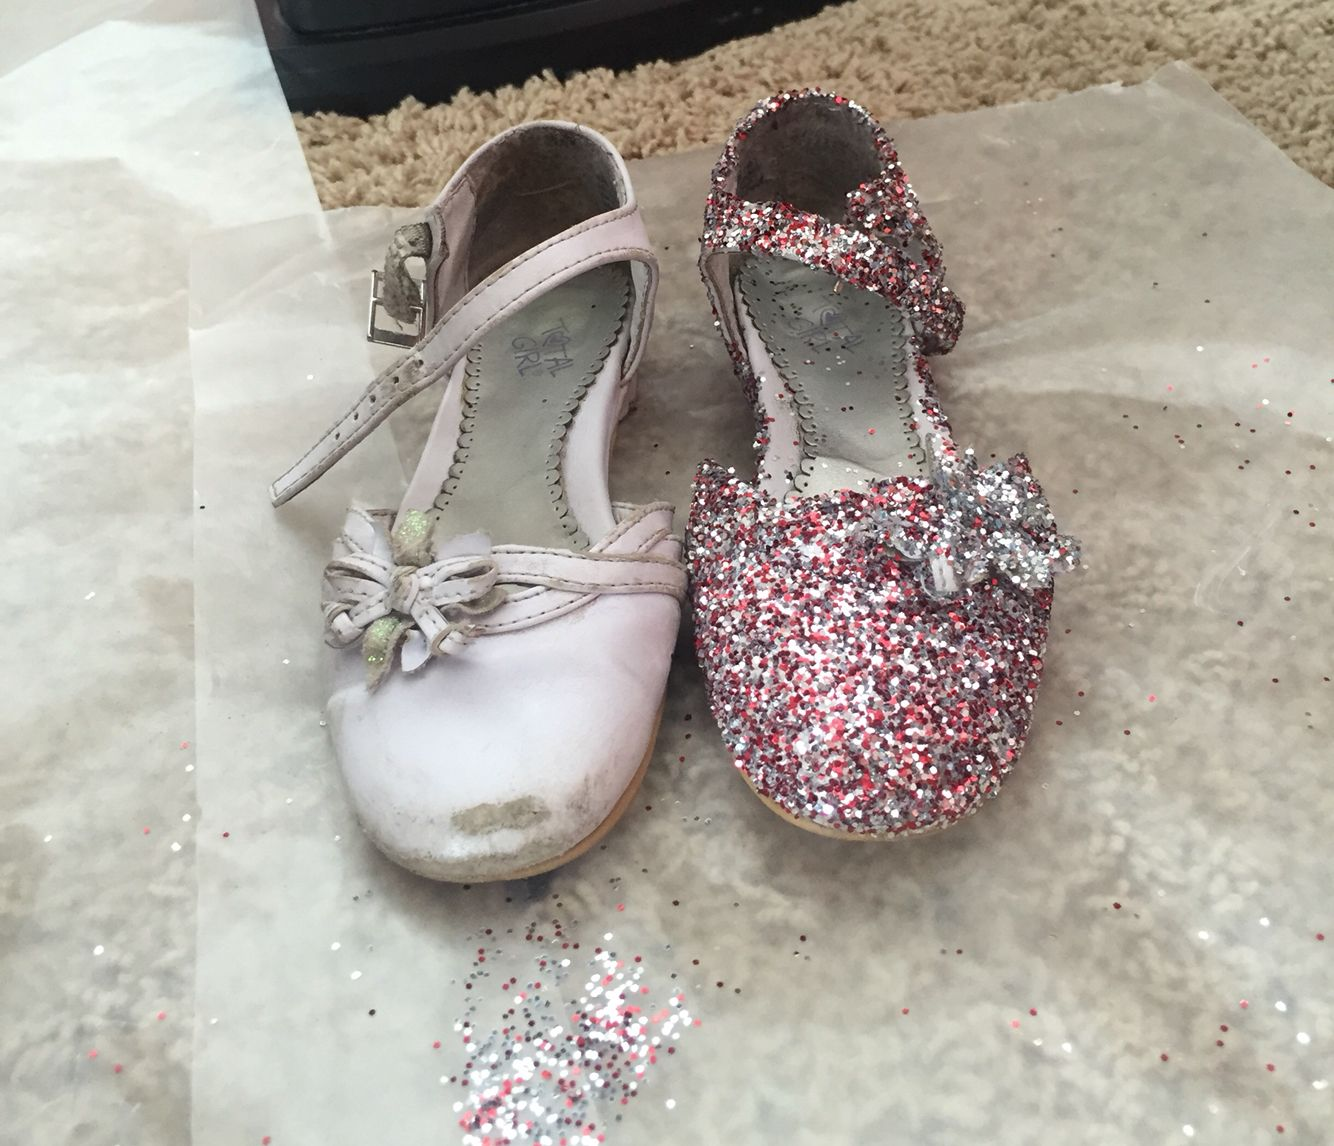 39a17d5f00e29 Worn out shoe throw some glitter on it : ) mommys princess loves it ...